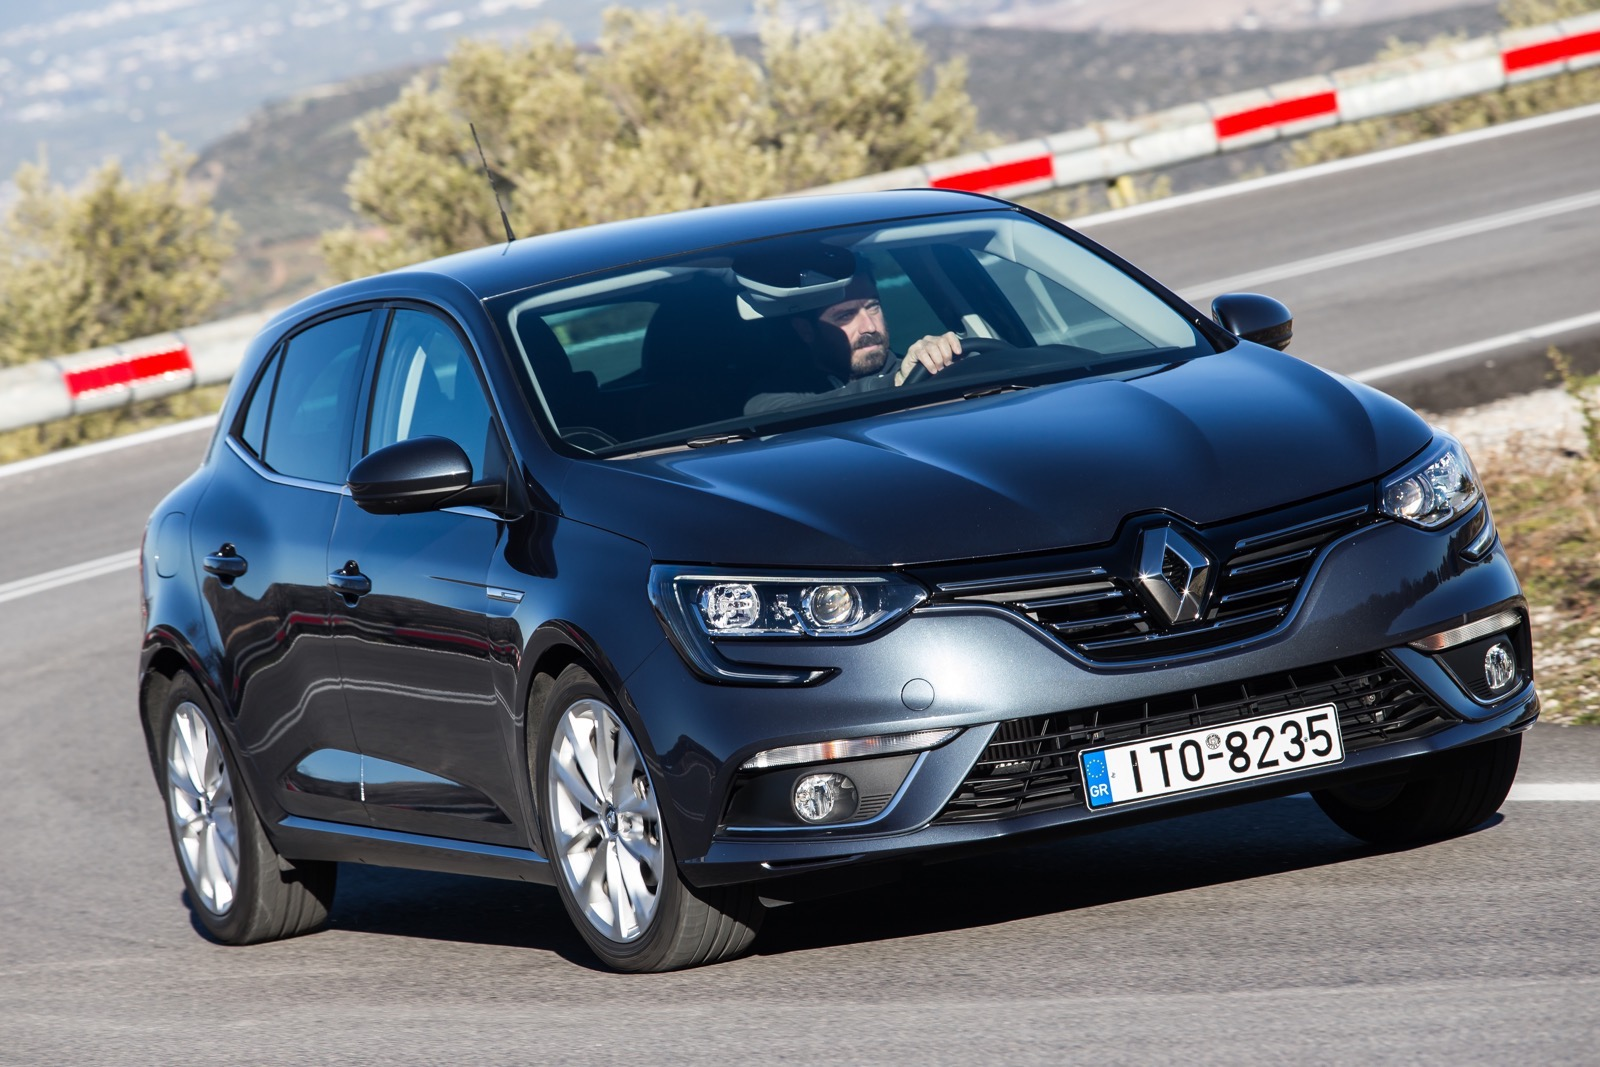 First_Drive_Renault_Megane_57